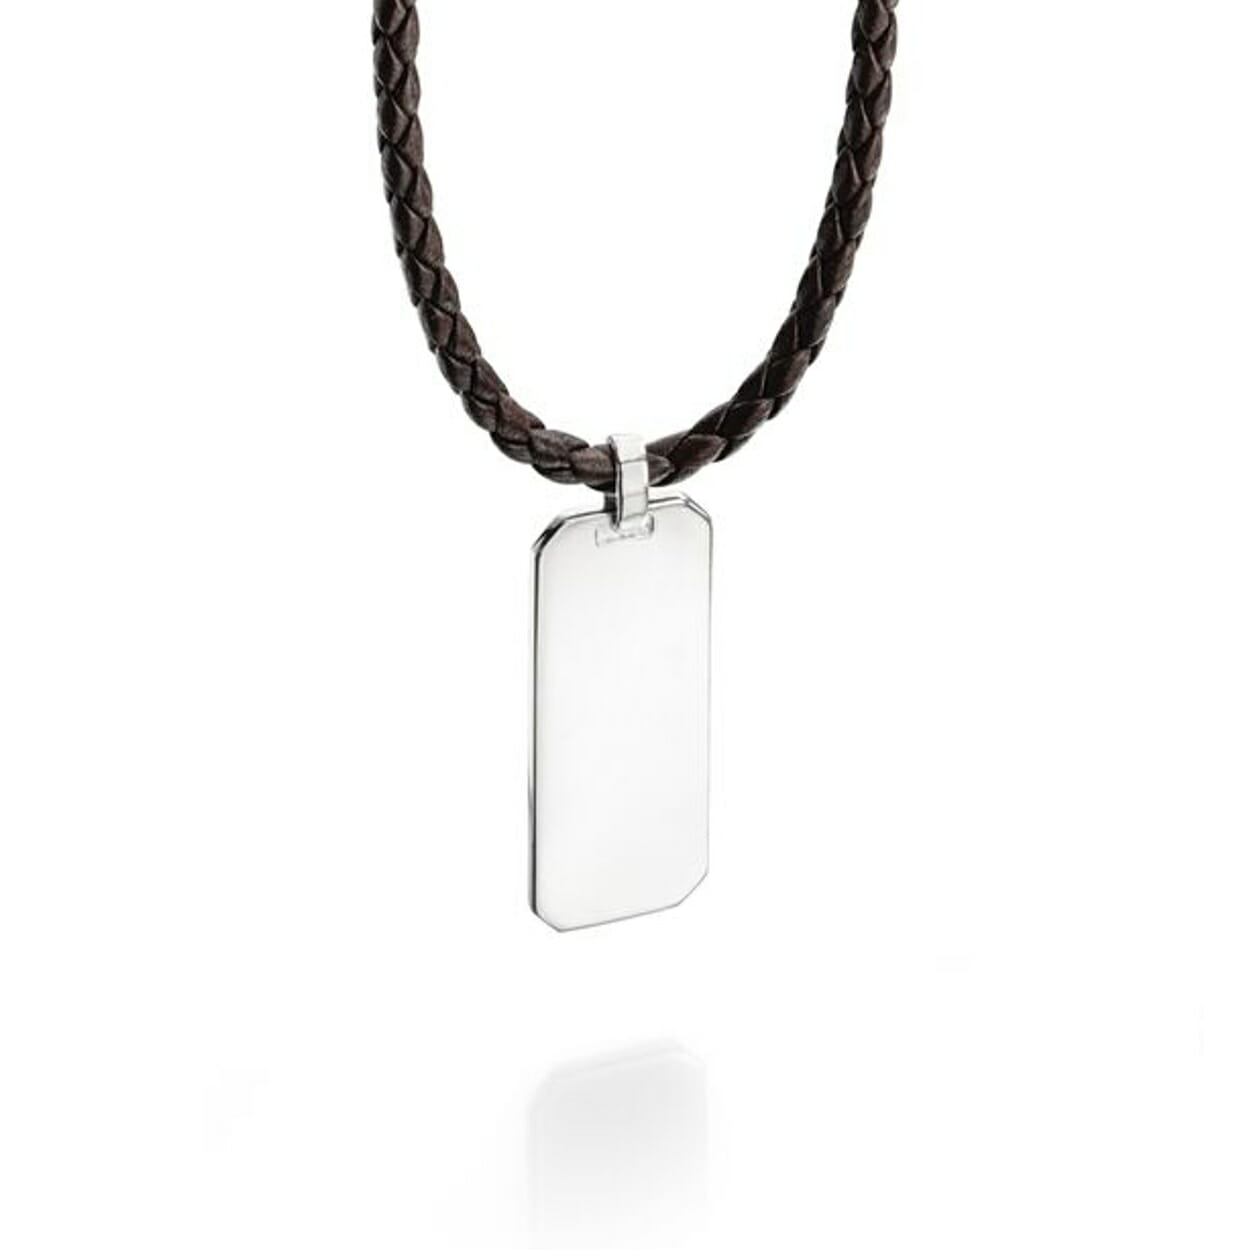 Fred bennett mens leather necklace with silver dog tag pendant fred bennett mens leather necklace with silver dog tag pendant aloadofball Images